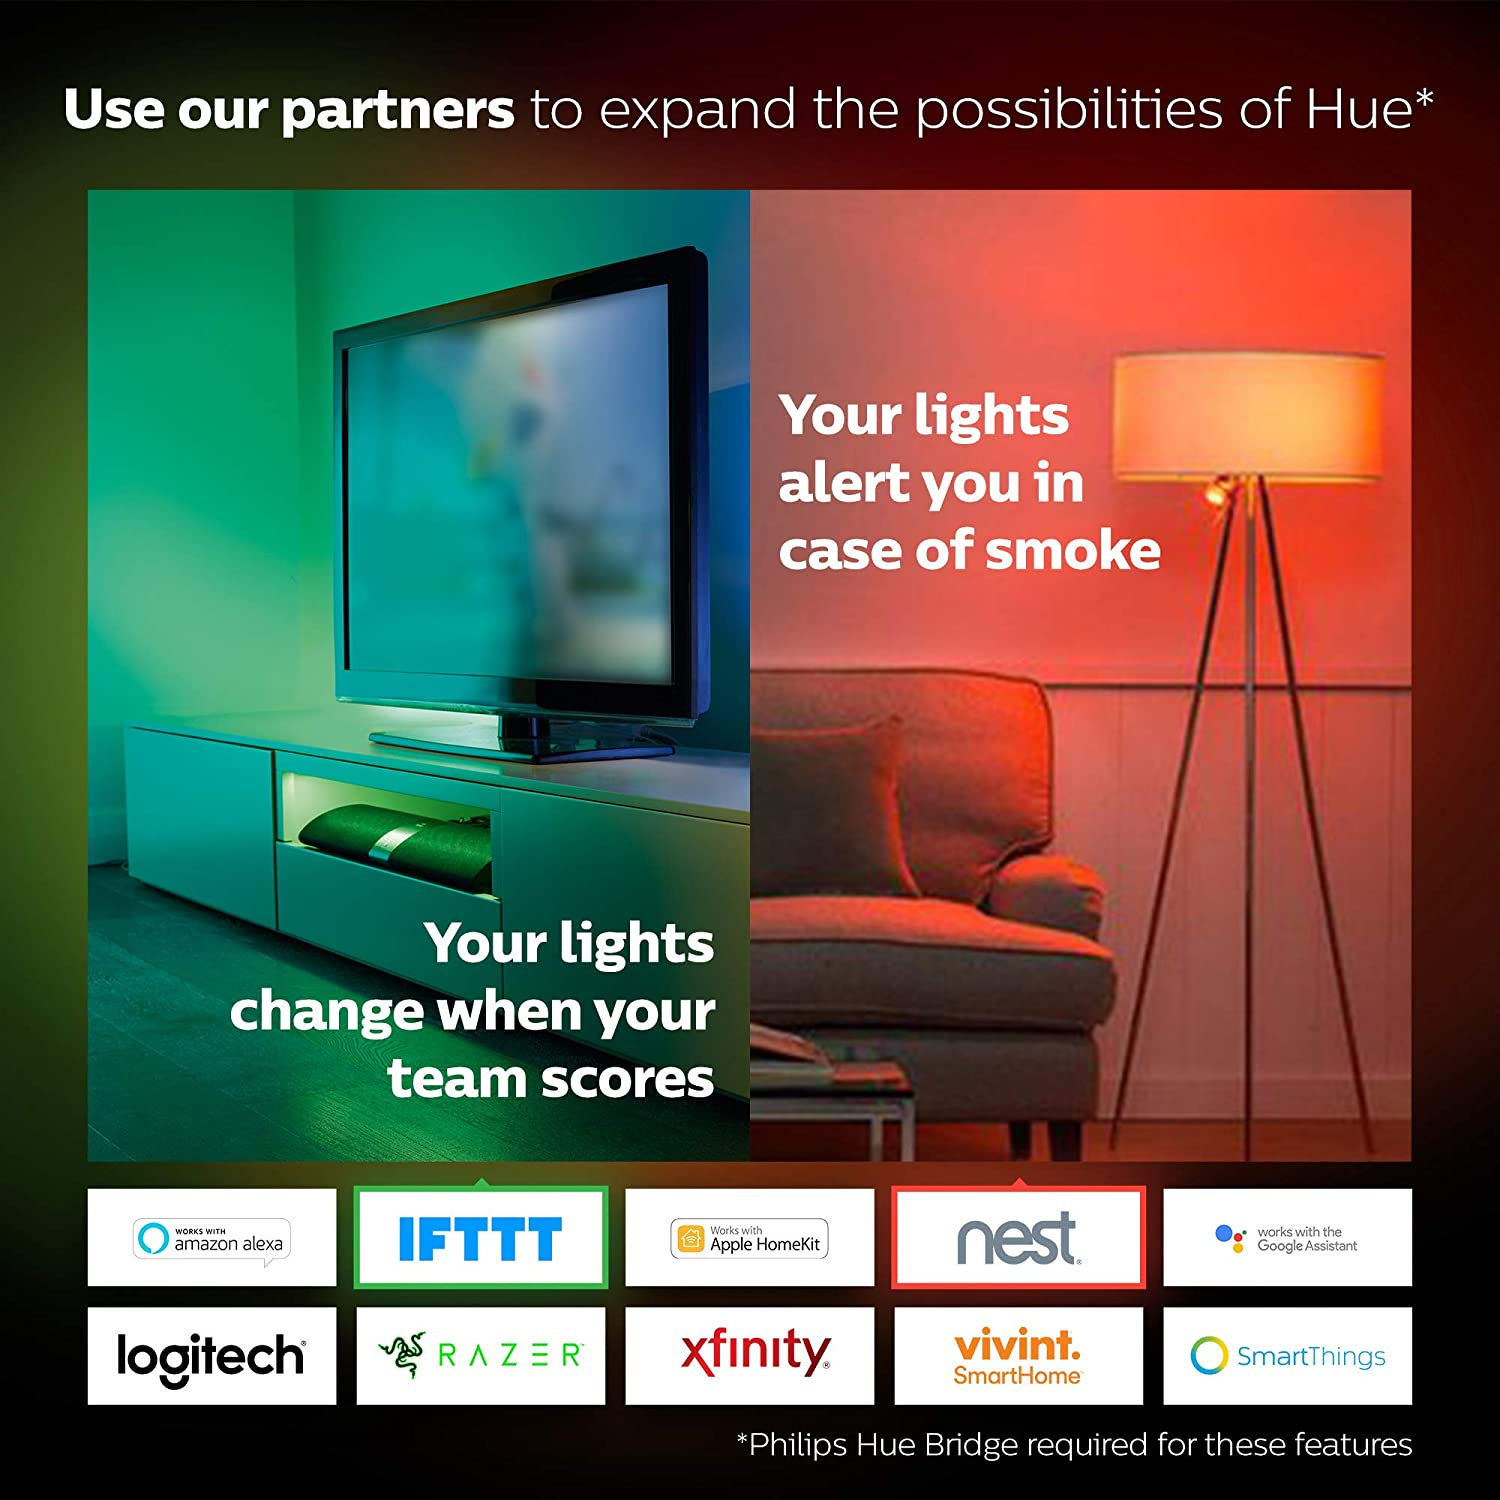 Philips Hue Personal Wireless Lighting 2 m Lightstrip Plus LED Kit with Home Automation Bridge Works with Alexa